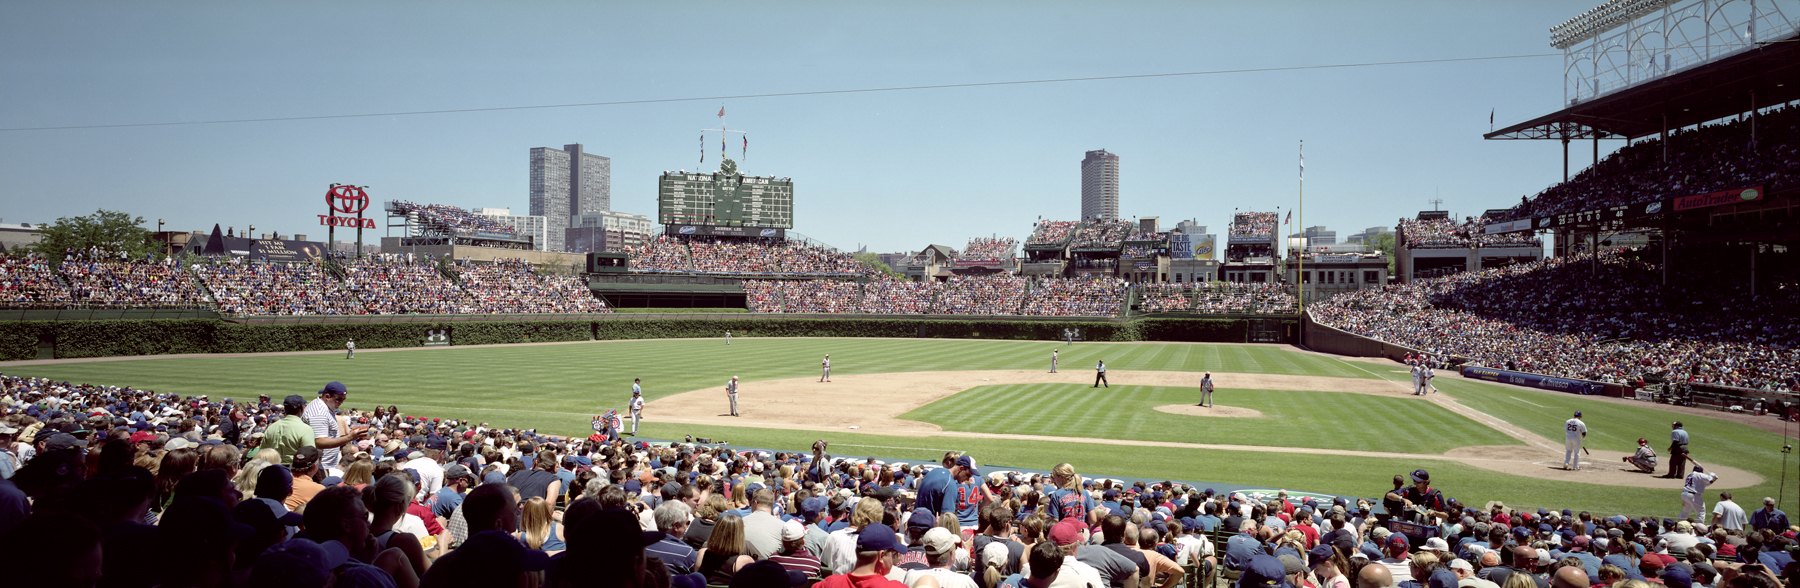 Chicago Cubs Wallpaper Wrigley Field Panoramic Cubs Vs Reds